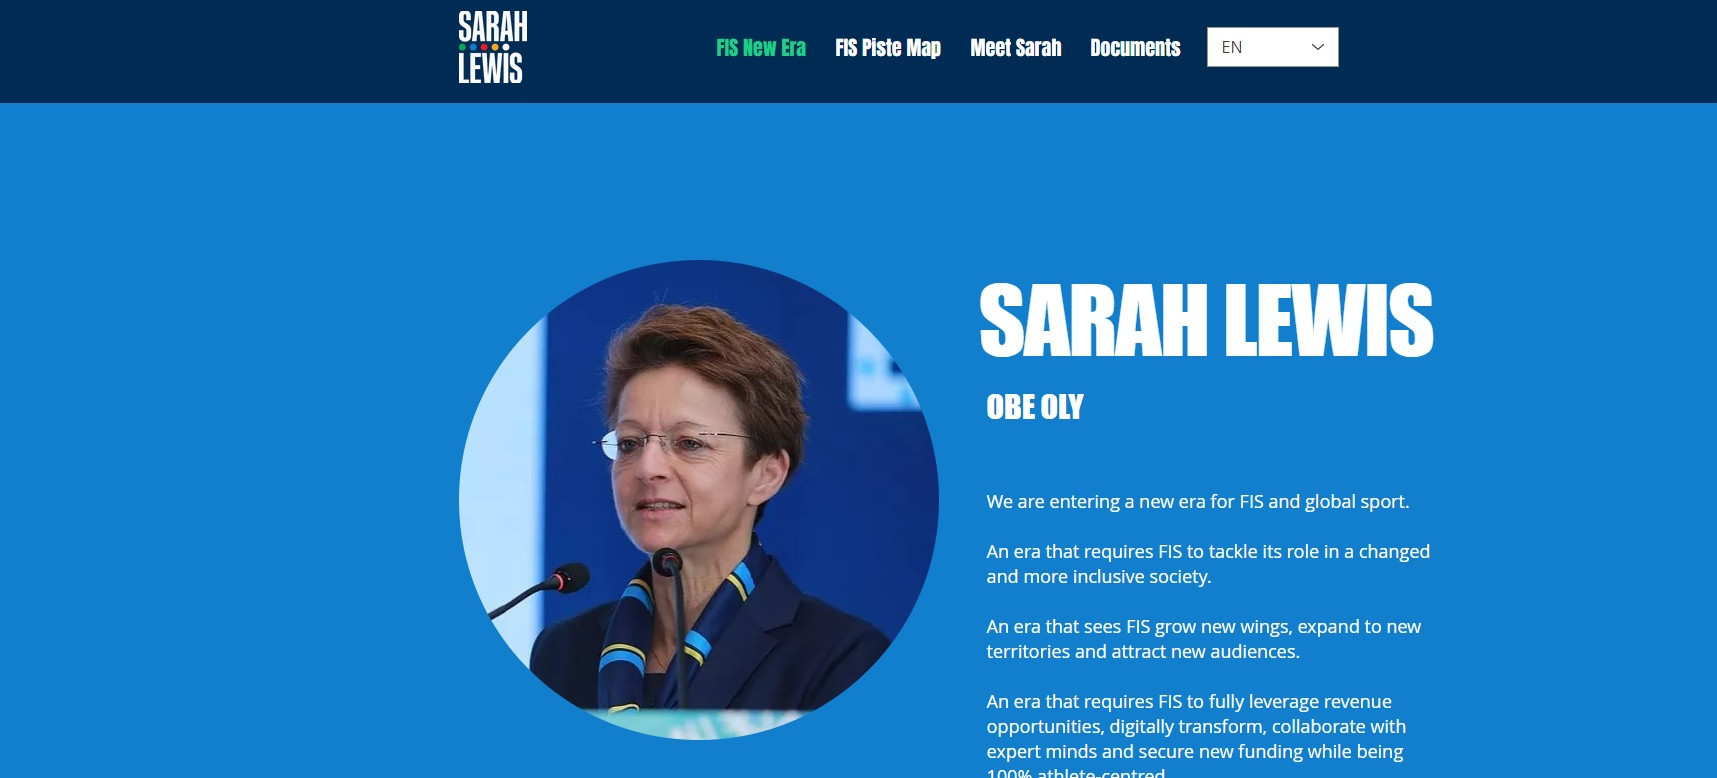 Sarah Lewis has today unveiled her manifesto and campaign website ©Sarah Lewis